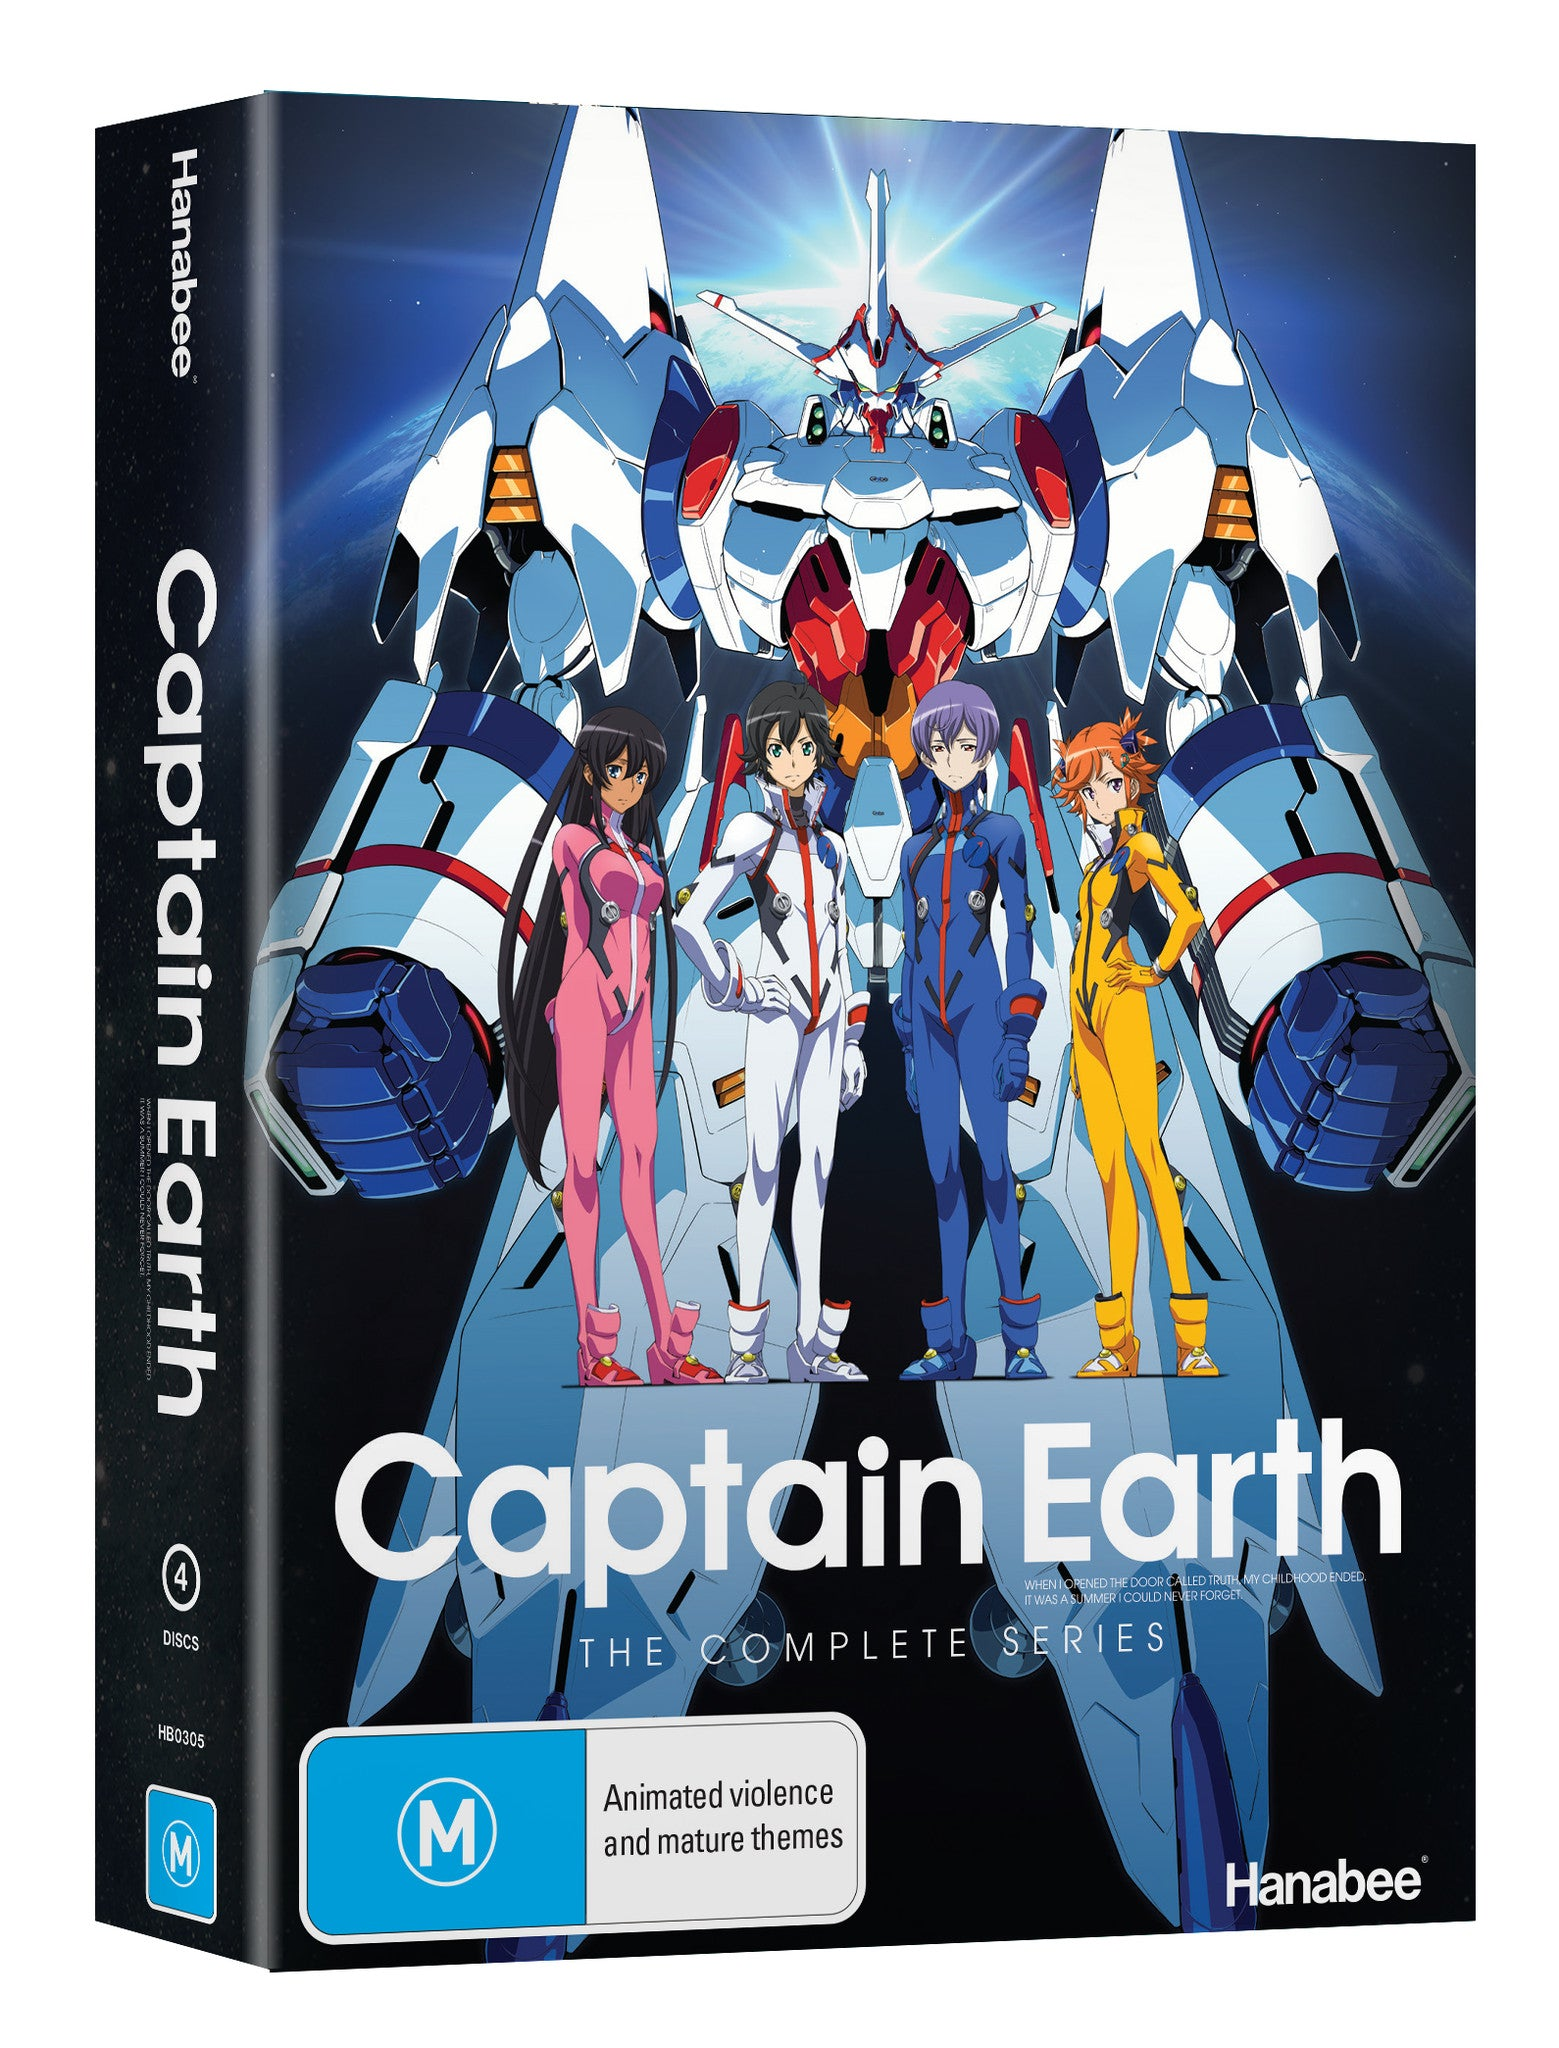 captain-earth-DVDbox.jpg?v=1513826994